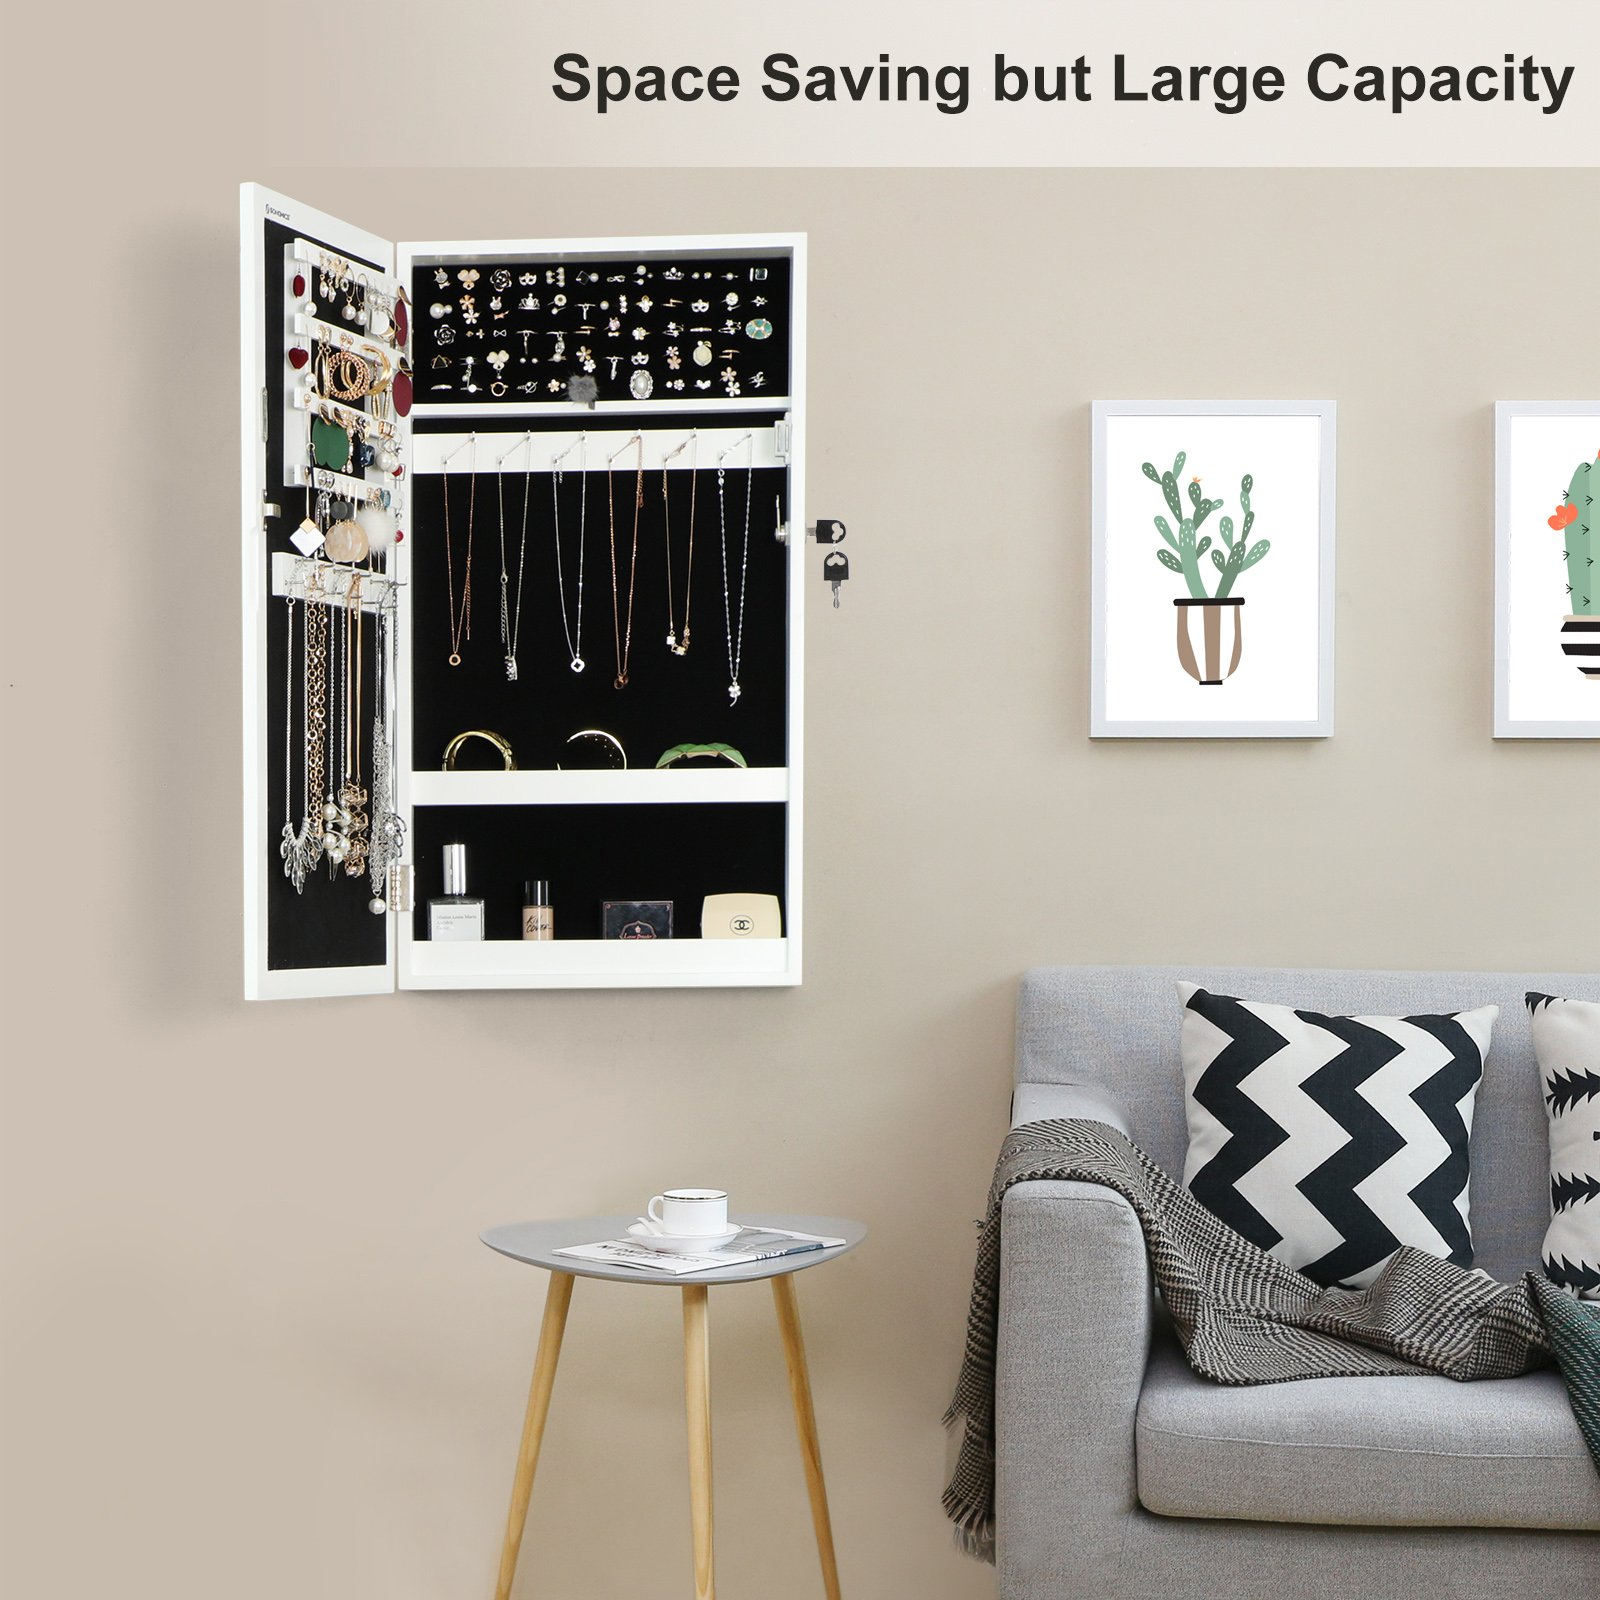 SONGMICS Lockable Jewelry Cabinet Armoire with Mirror, Wall-Mounted Space Saving Jewelry Storage Organizer White UJJC51WT by SONGMICS (Image #2)